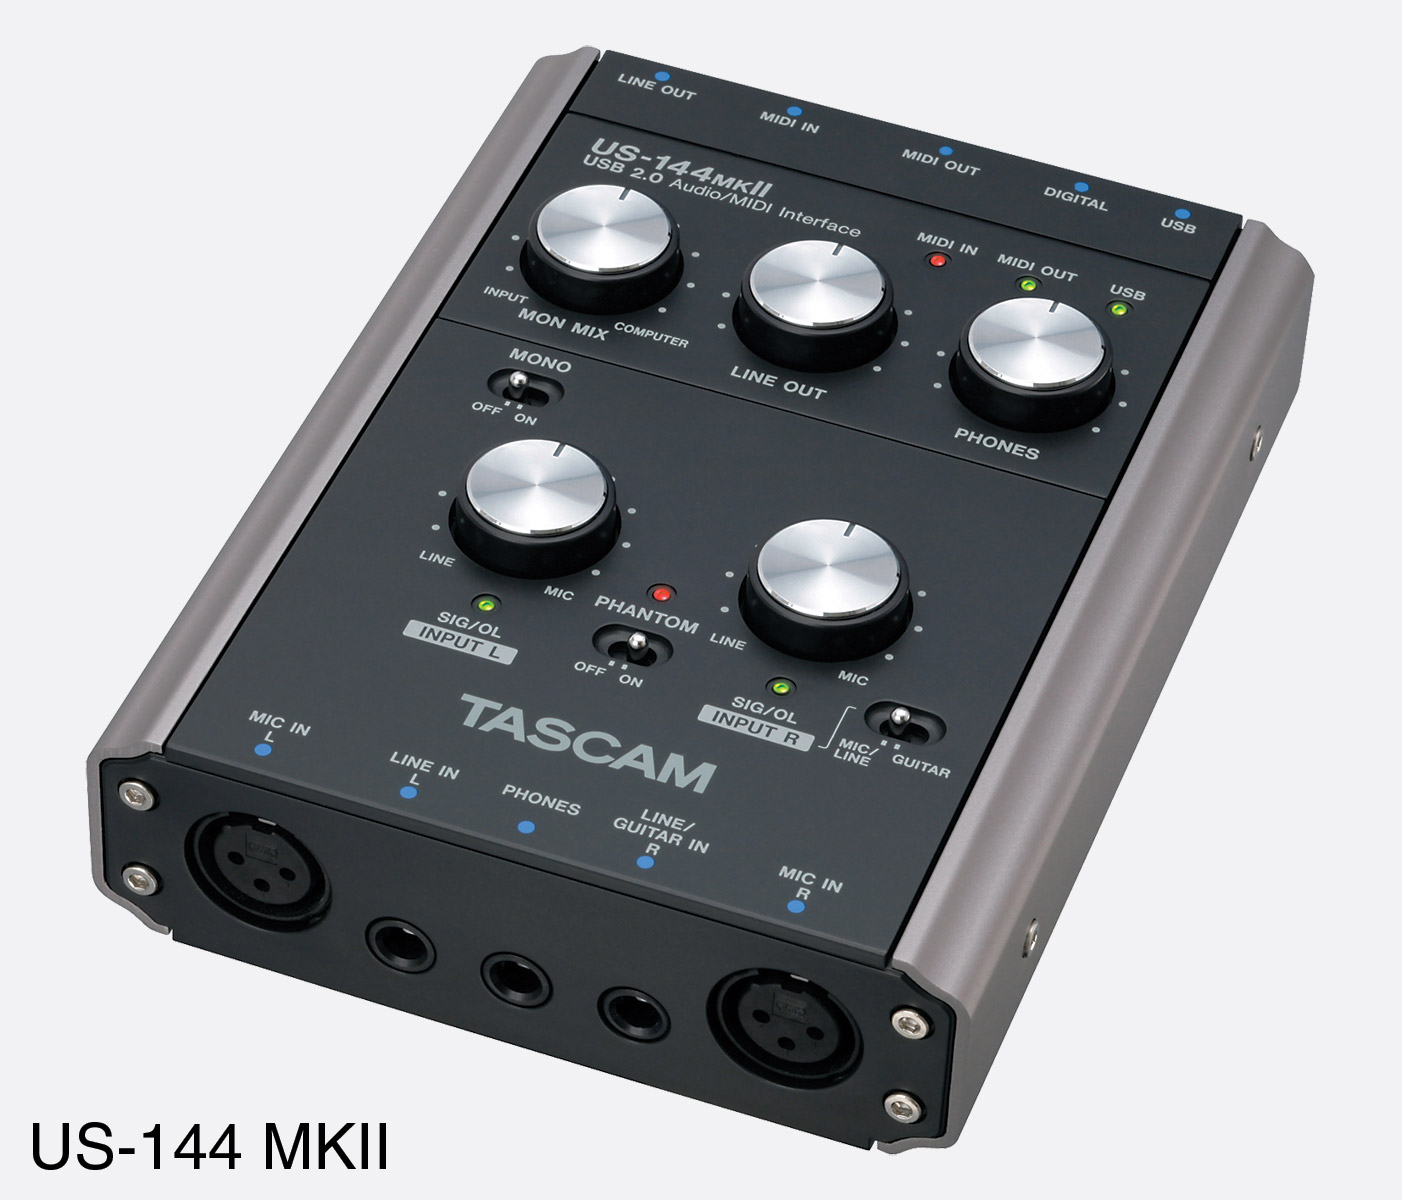 Retro Style Turntable With Usb To Pc additionally 95 8523 TASCAM US 144MKII USB AUDIO INTERFACE 2x Mic Line In S PDIF MIDI I O Line Monitor Out besides CN0282 moreover Does A Usb Monitor Require Vga Card furthermore Product info. on digital audio to rca conversion